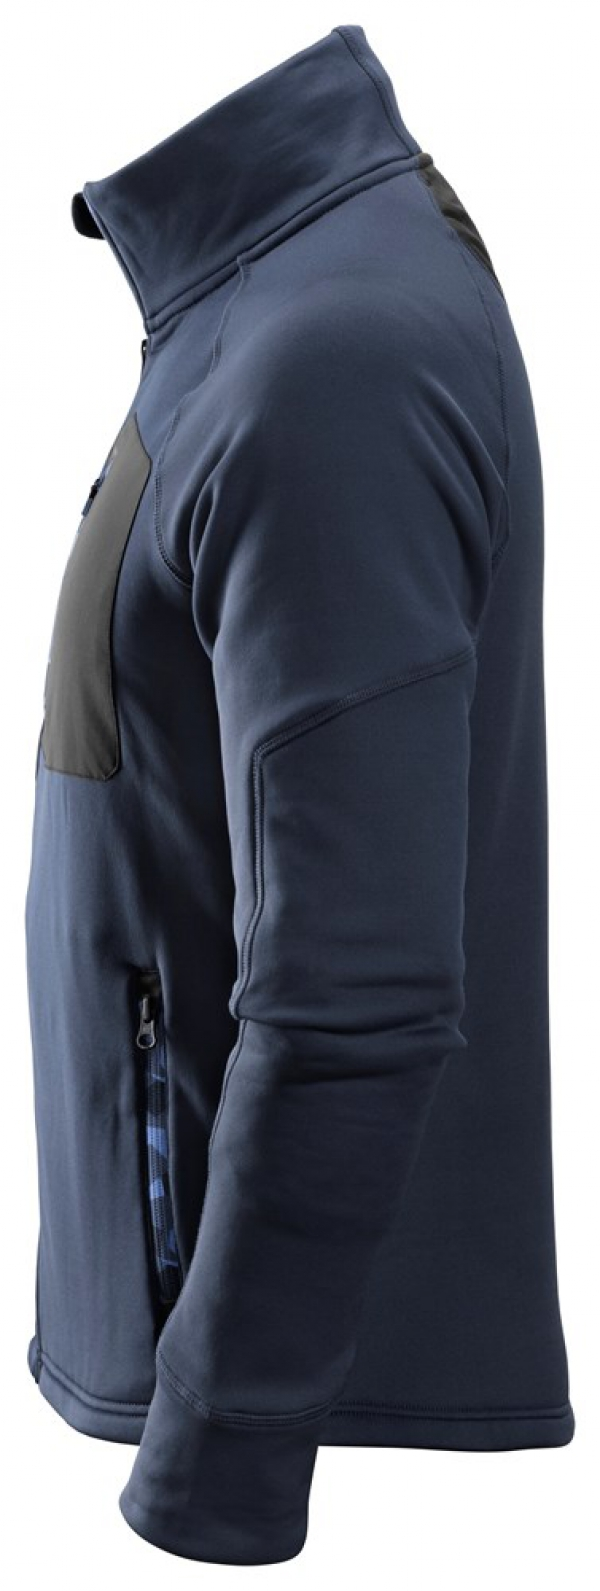 FlexiWork Stretch-Fleece Arbeitsjacke